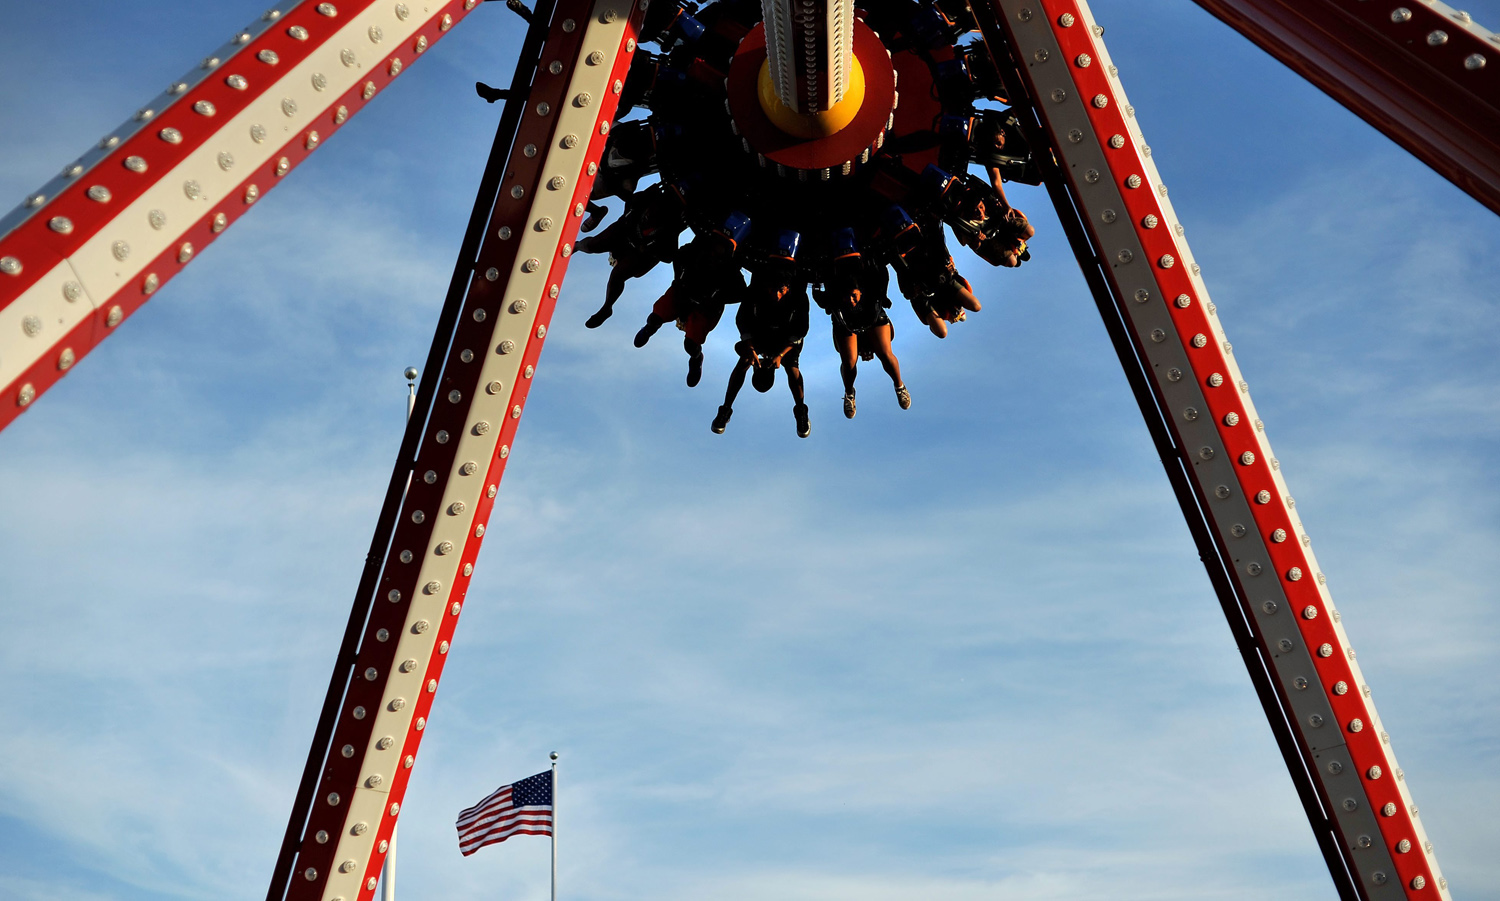 A group of people are flipped upside down the Luna 360, an amusement ride at Coney Island in Brooklyn, N.Y., on May 26, 2014.